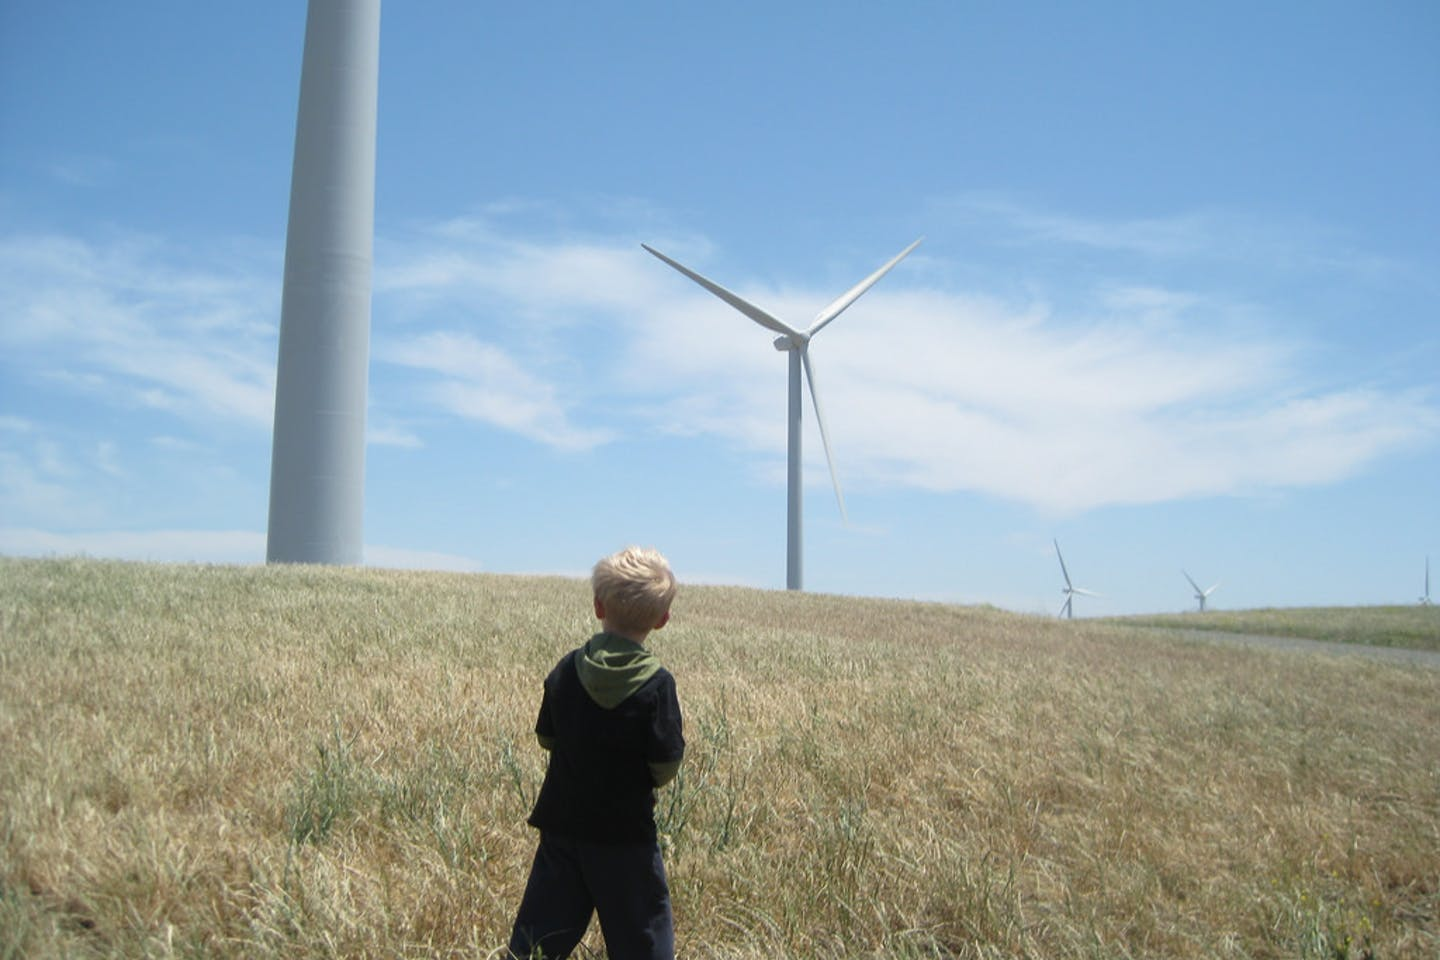 A child looks up at wind turbines